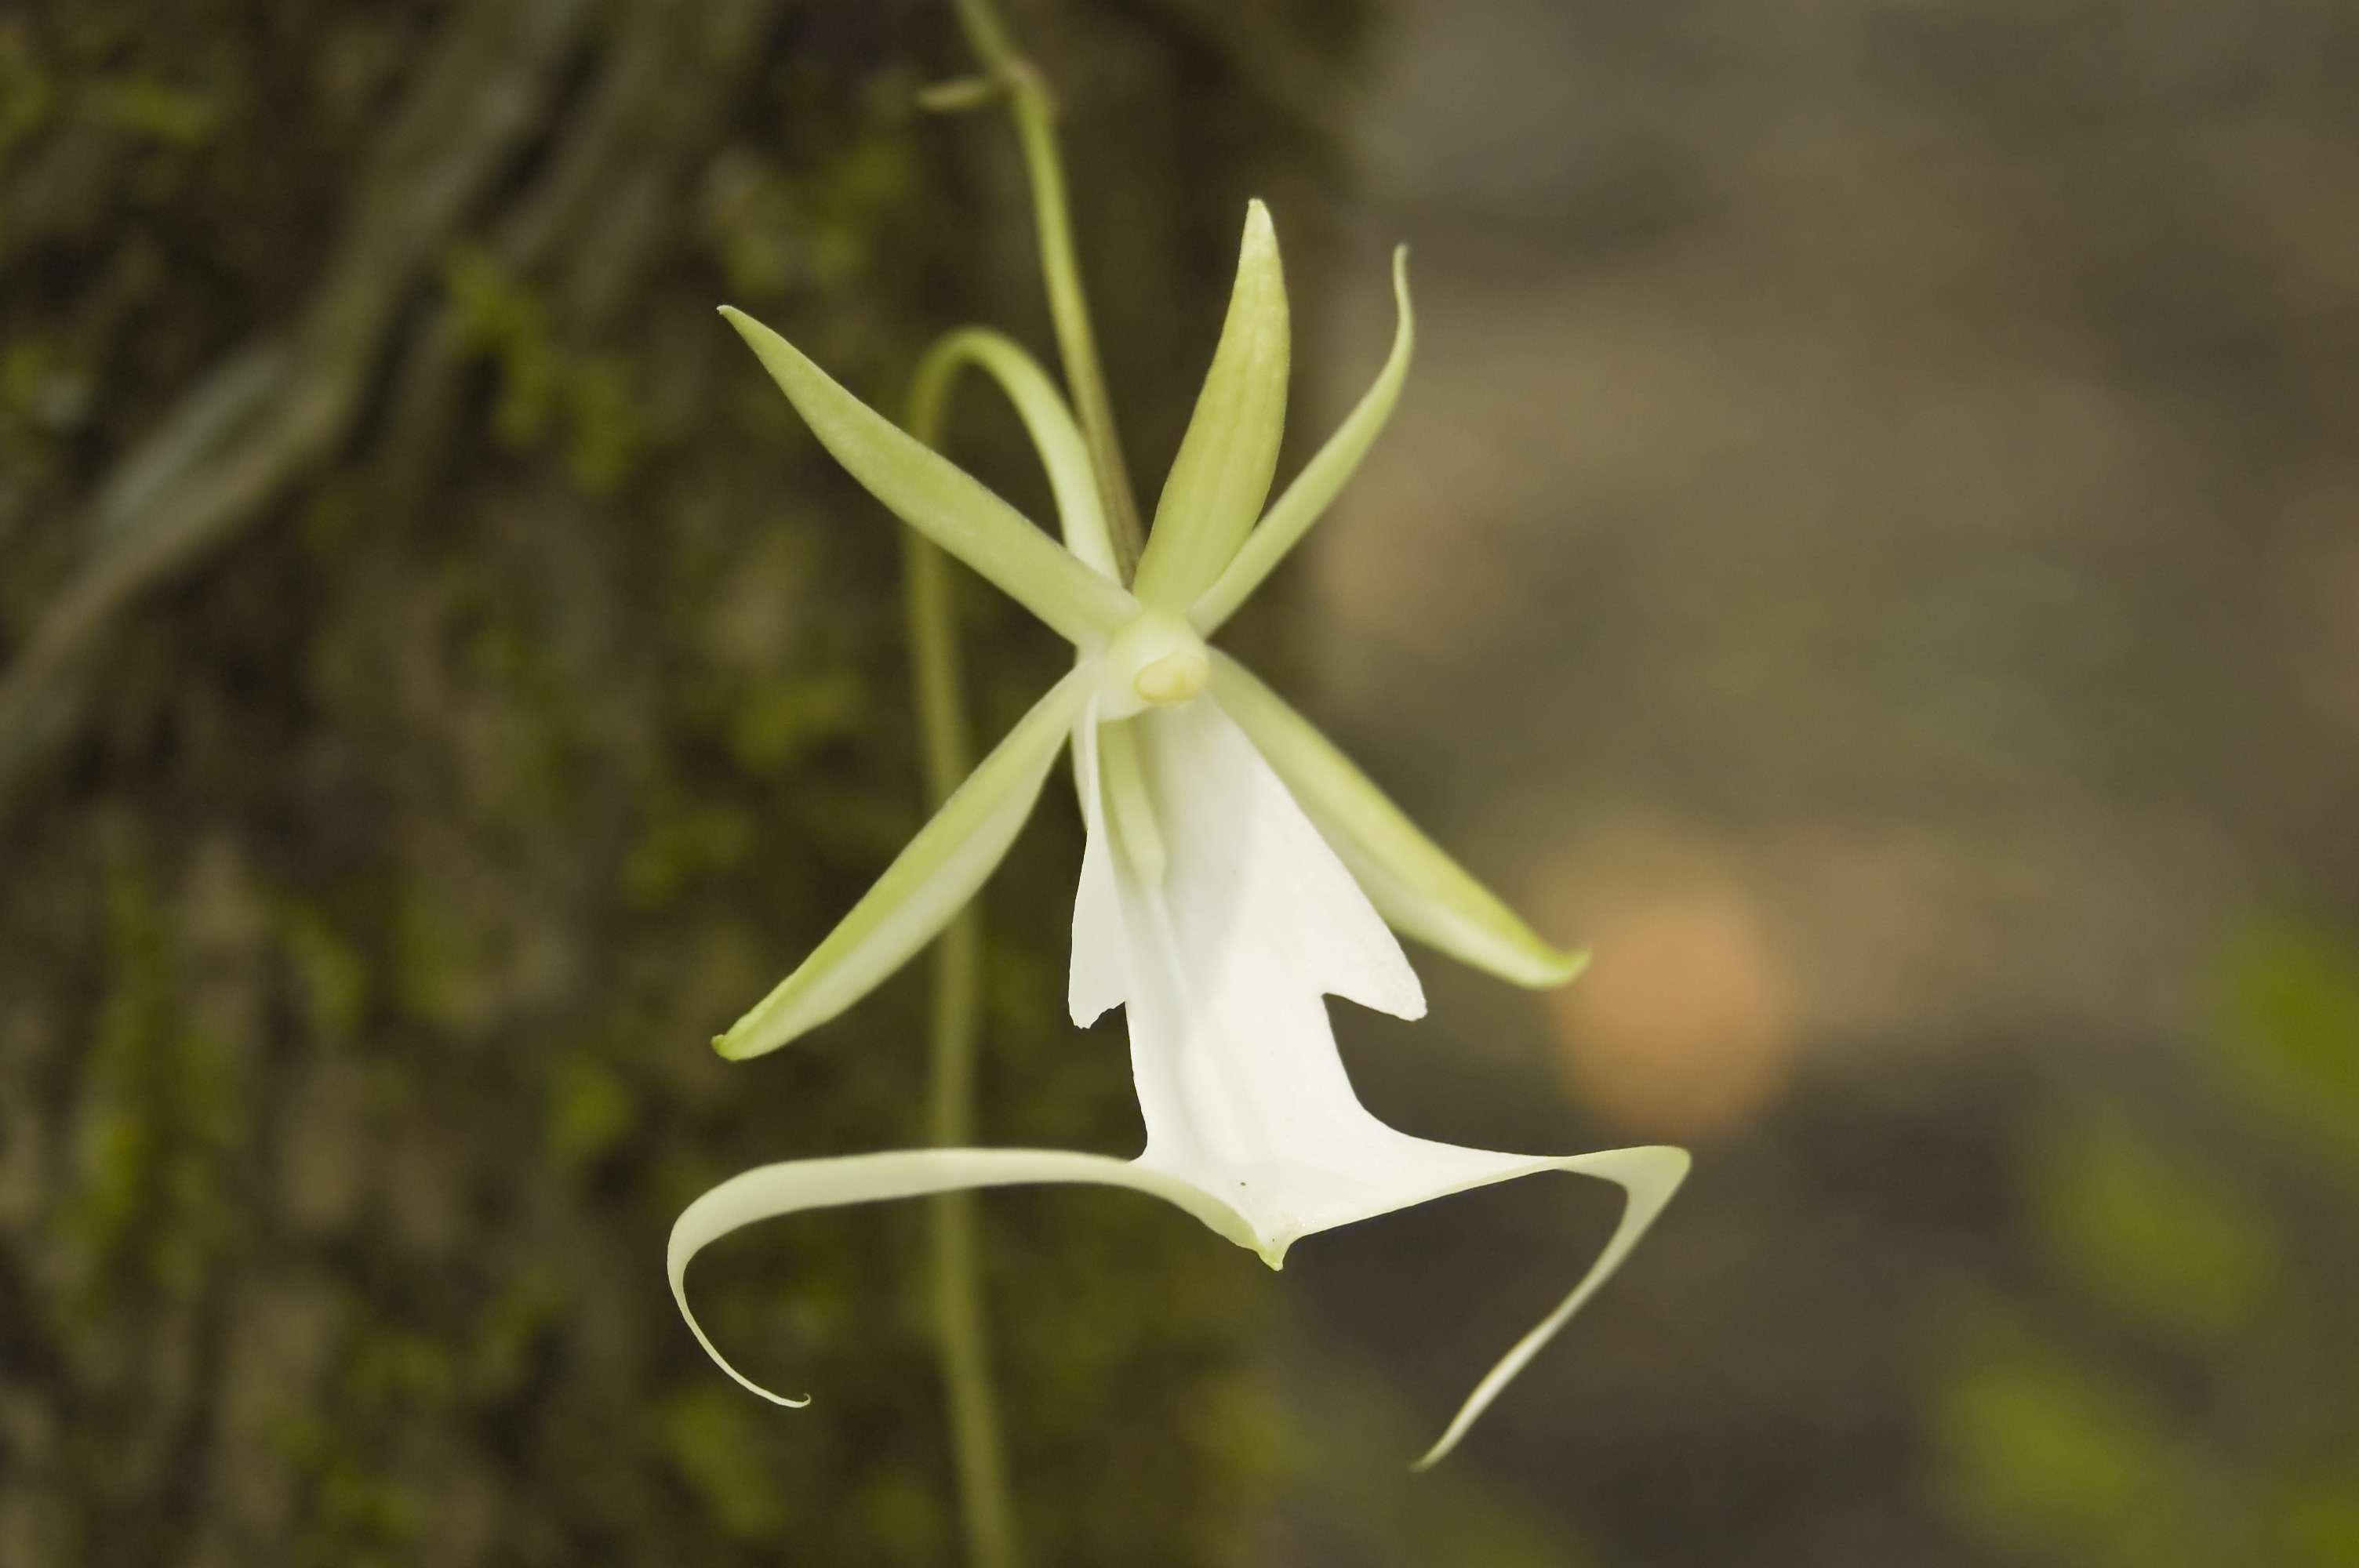 ghost orchid, Dendrophylax lindenii, at Fakahatchee Strand